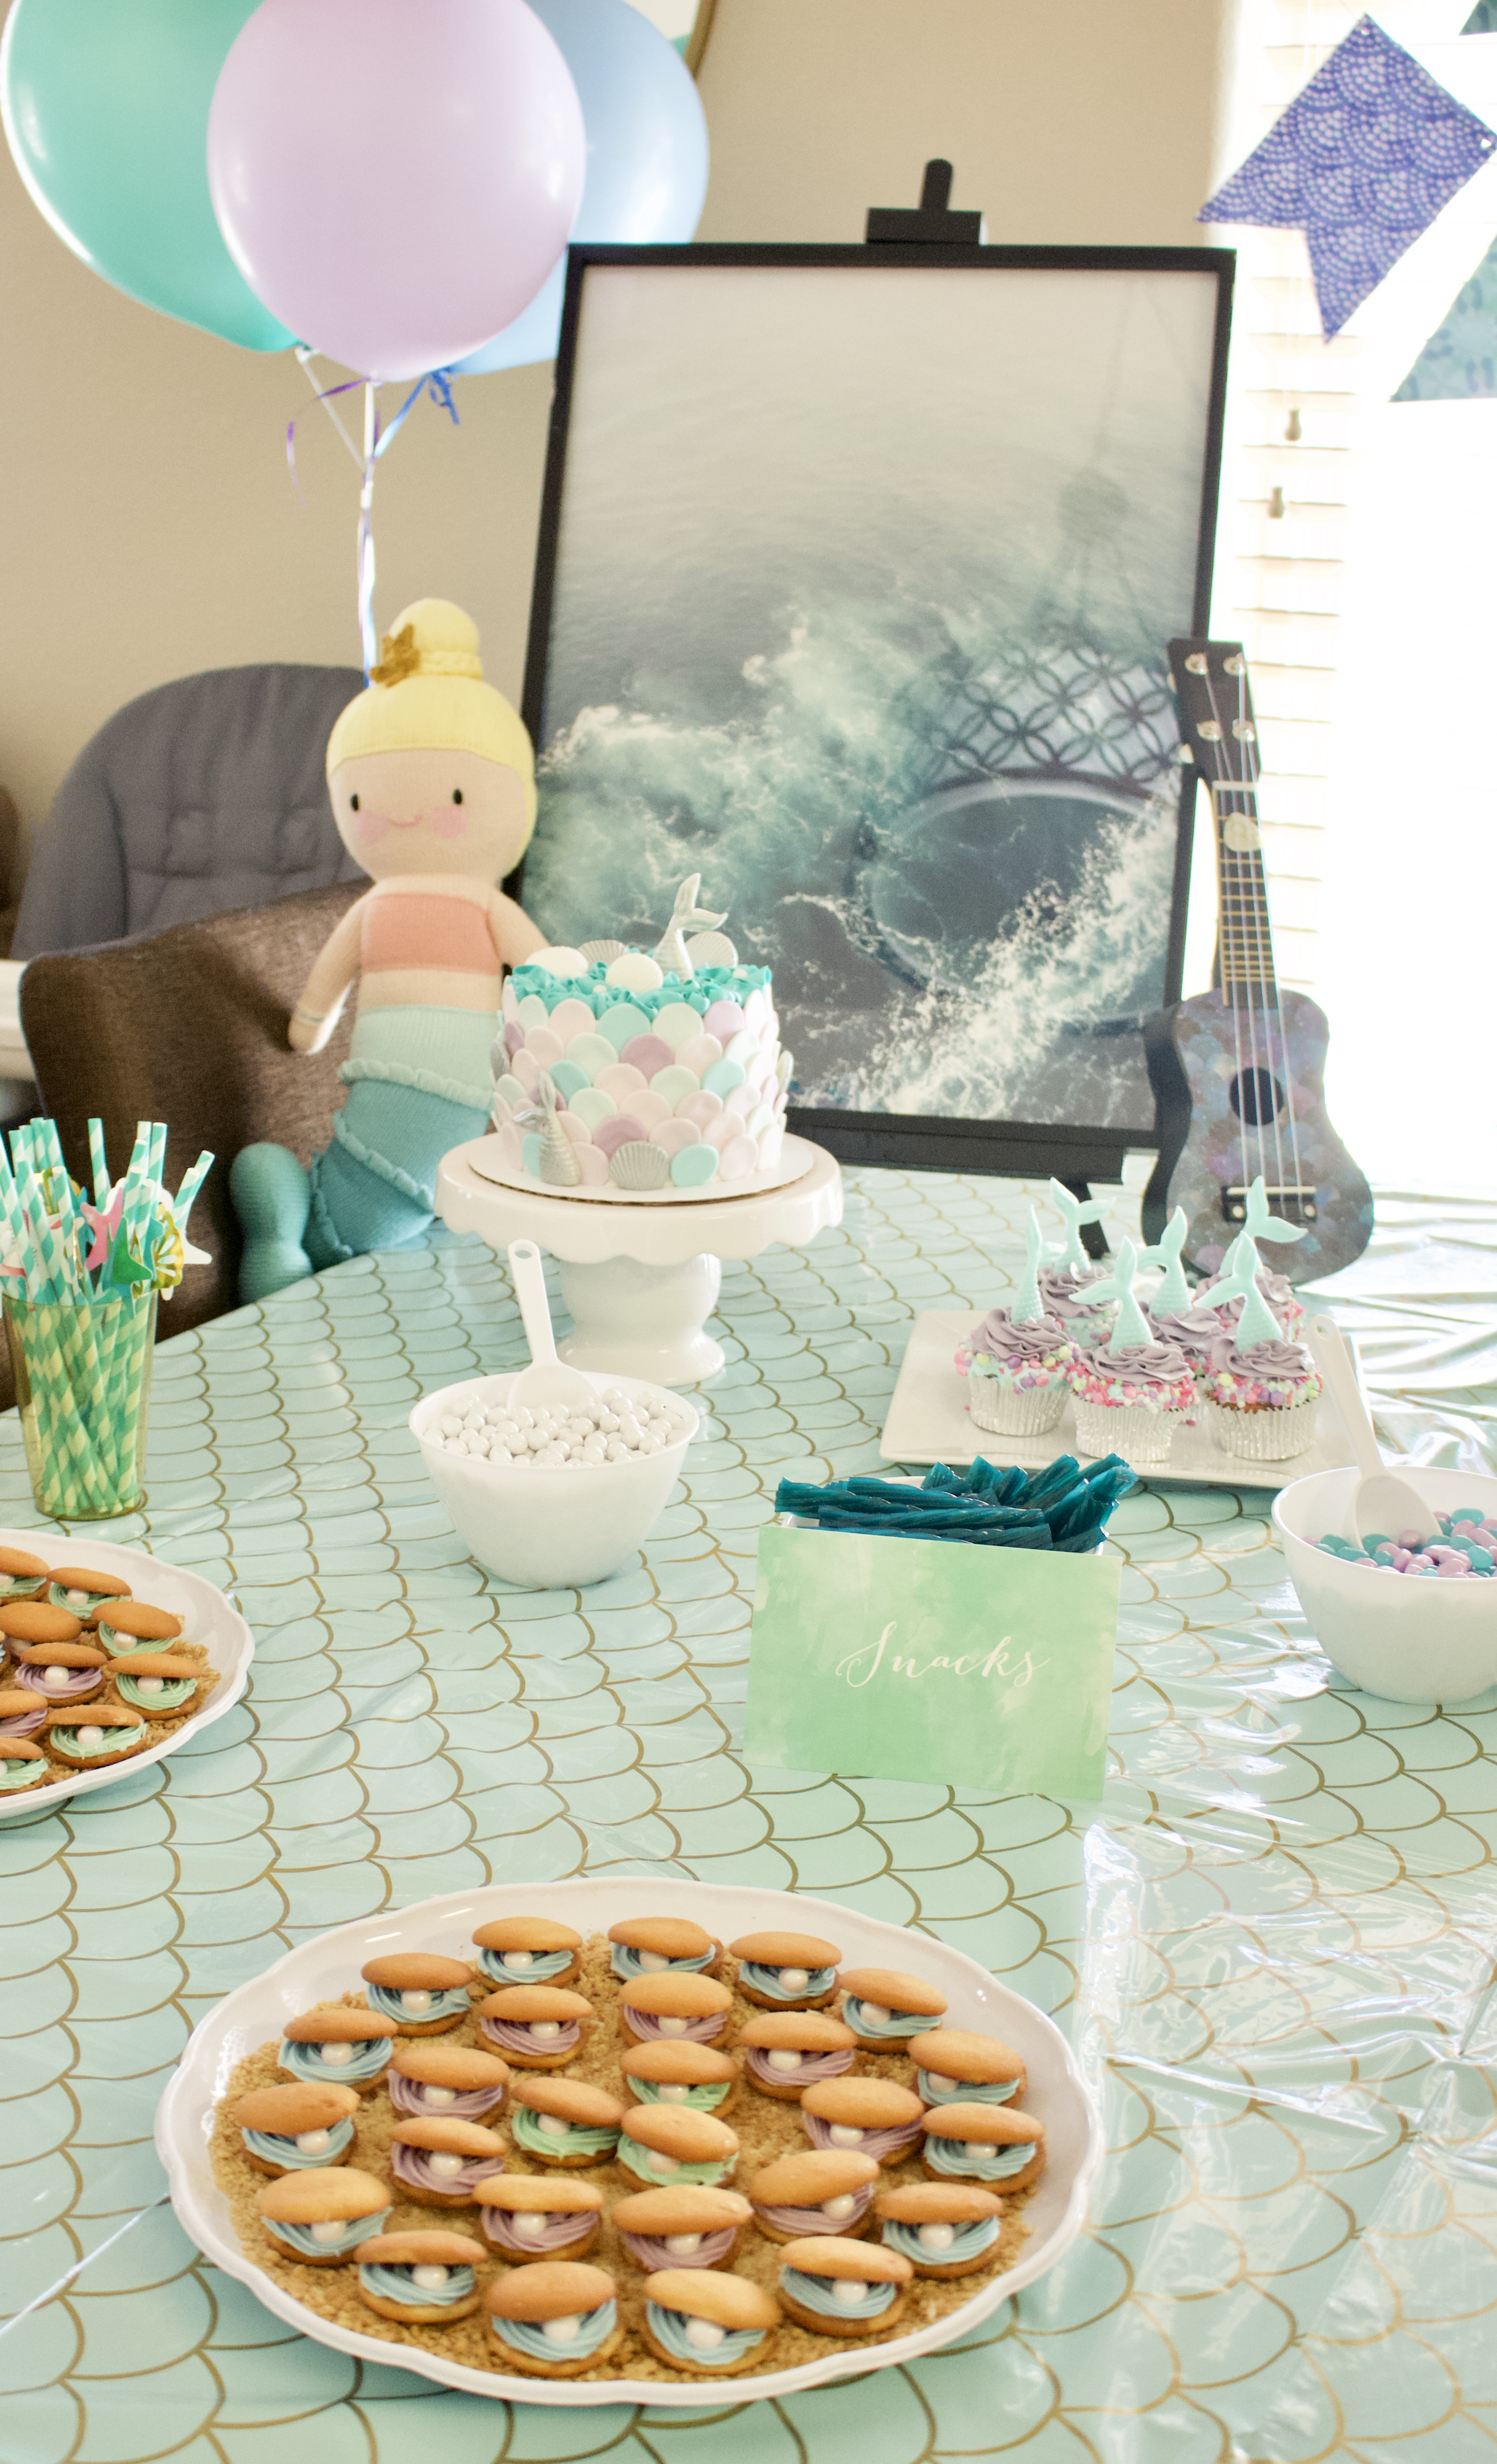 mermaid party diy decor #birthdayparty #kidsbirthday #mermaidbirthday #mermaidparty